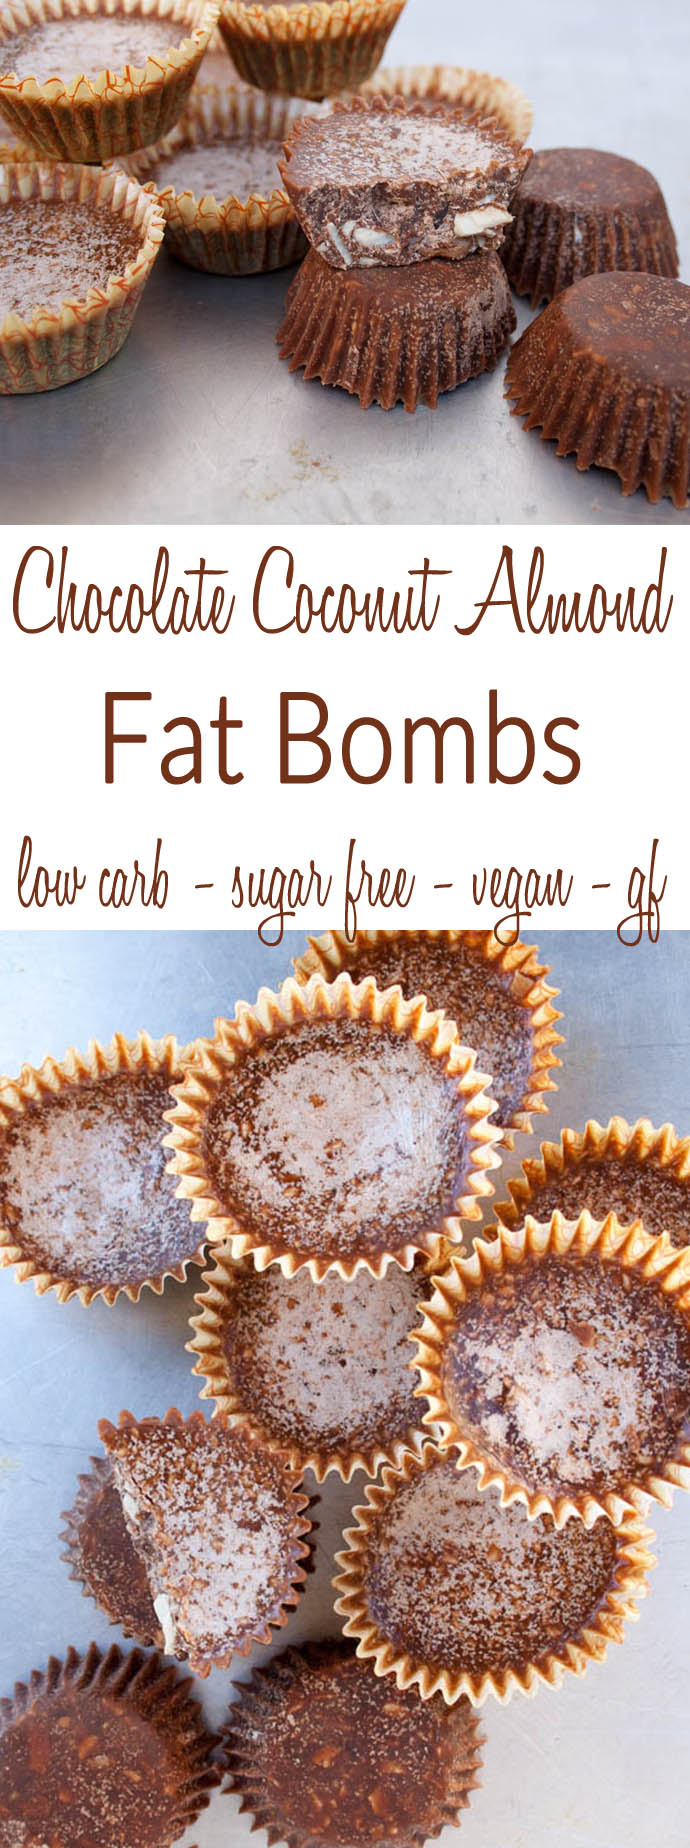 Chocolate Coconut Almond Fat Bombs (vegan, gluten free, low carb, sugar free) - These healthy sweet treats are a great way to add coconut oil into your diet!